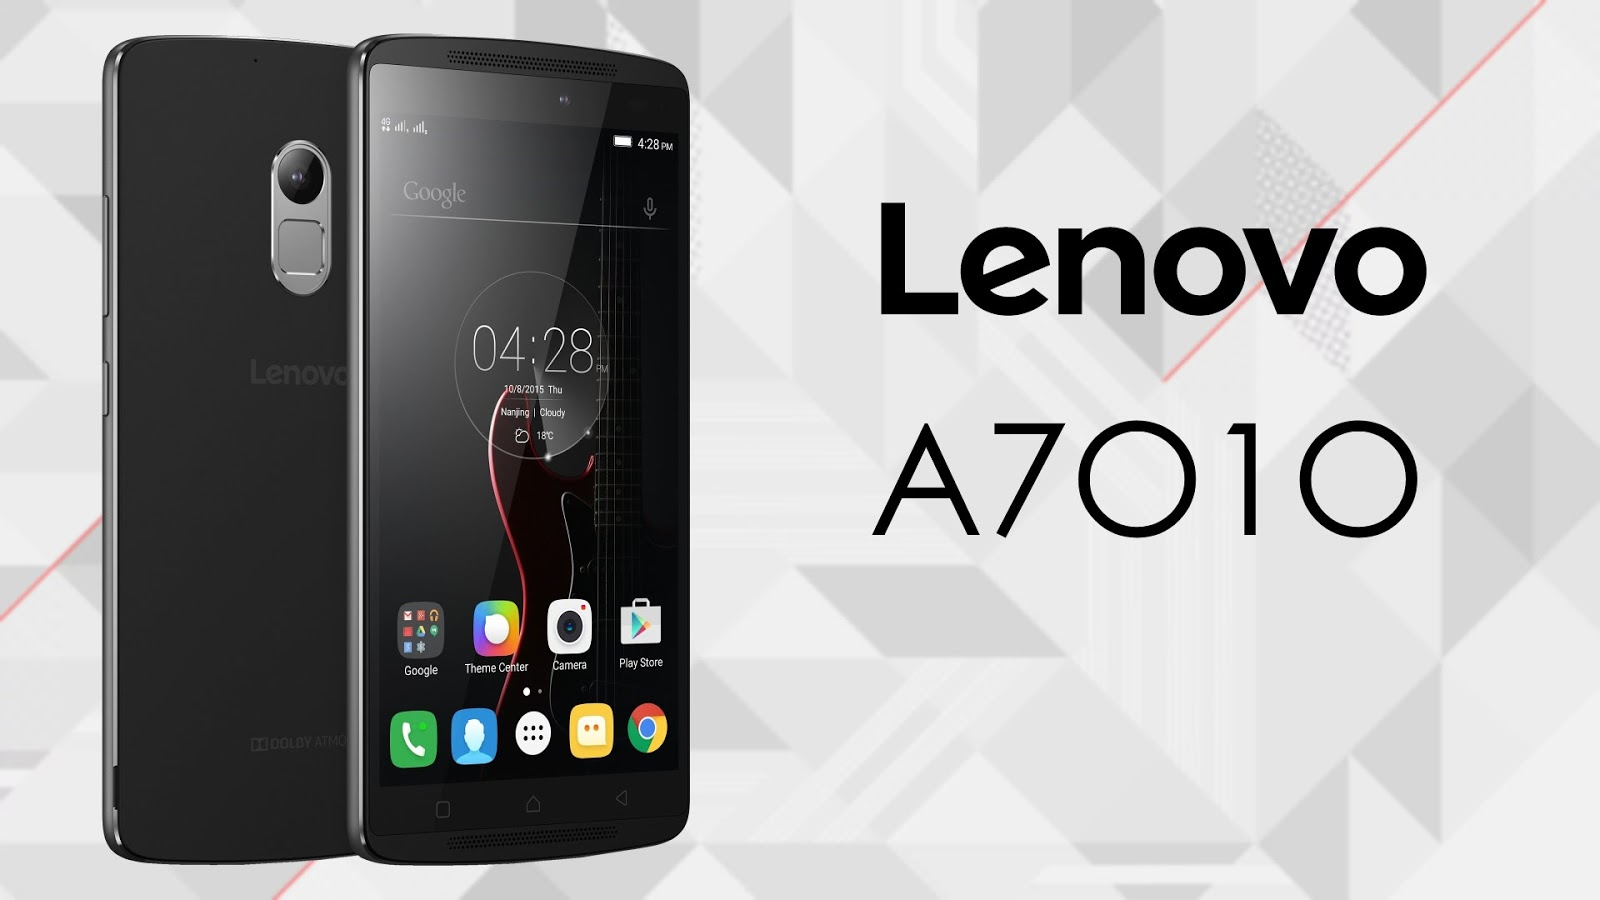 How to Update LineageOS 14 1 on Lenovo Vibe A7010 (Nightly